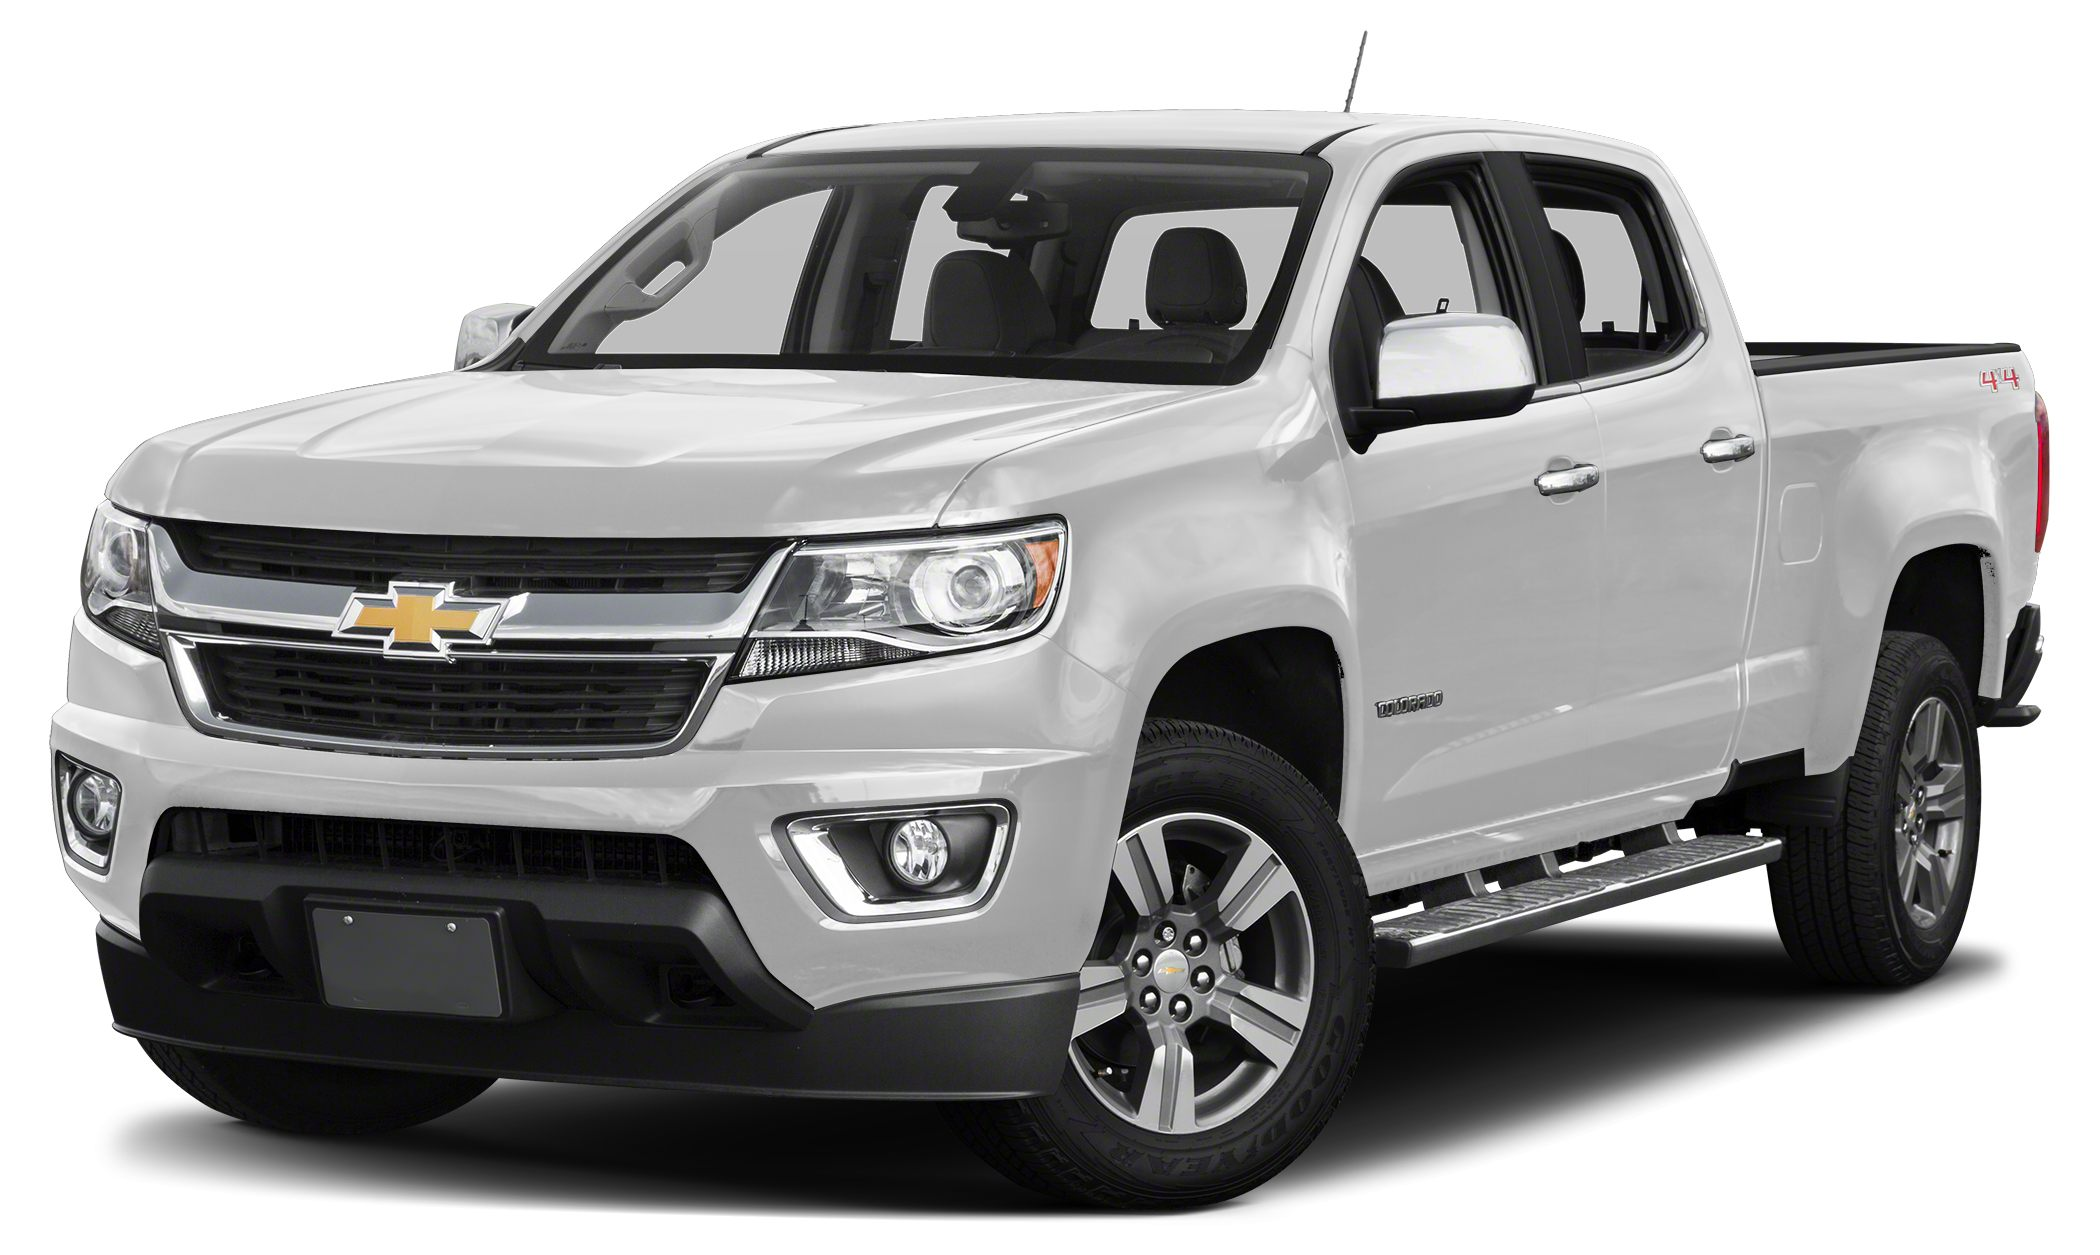 2018 Chevrolet Colorado LT Summit White 2018 Chevrolet Colorado LT RWD 8-Speed Automatic V6 Miles